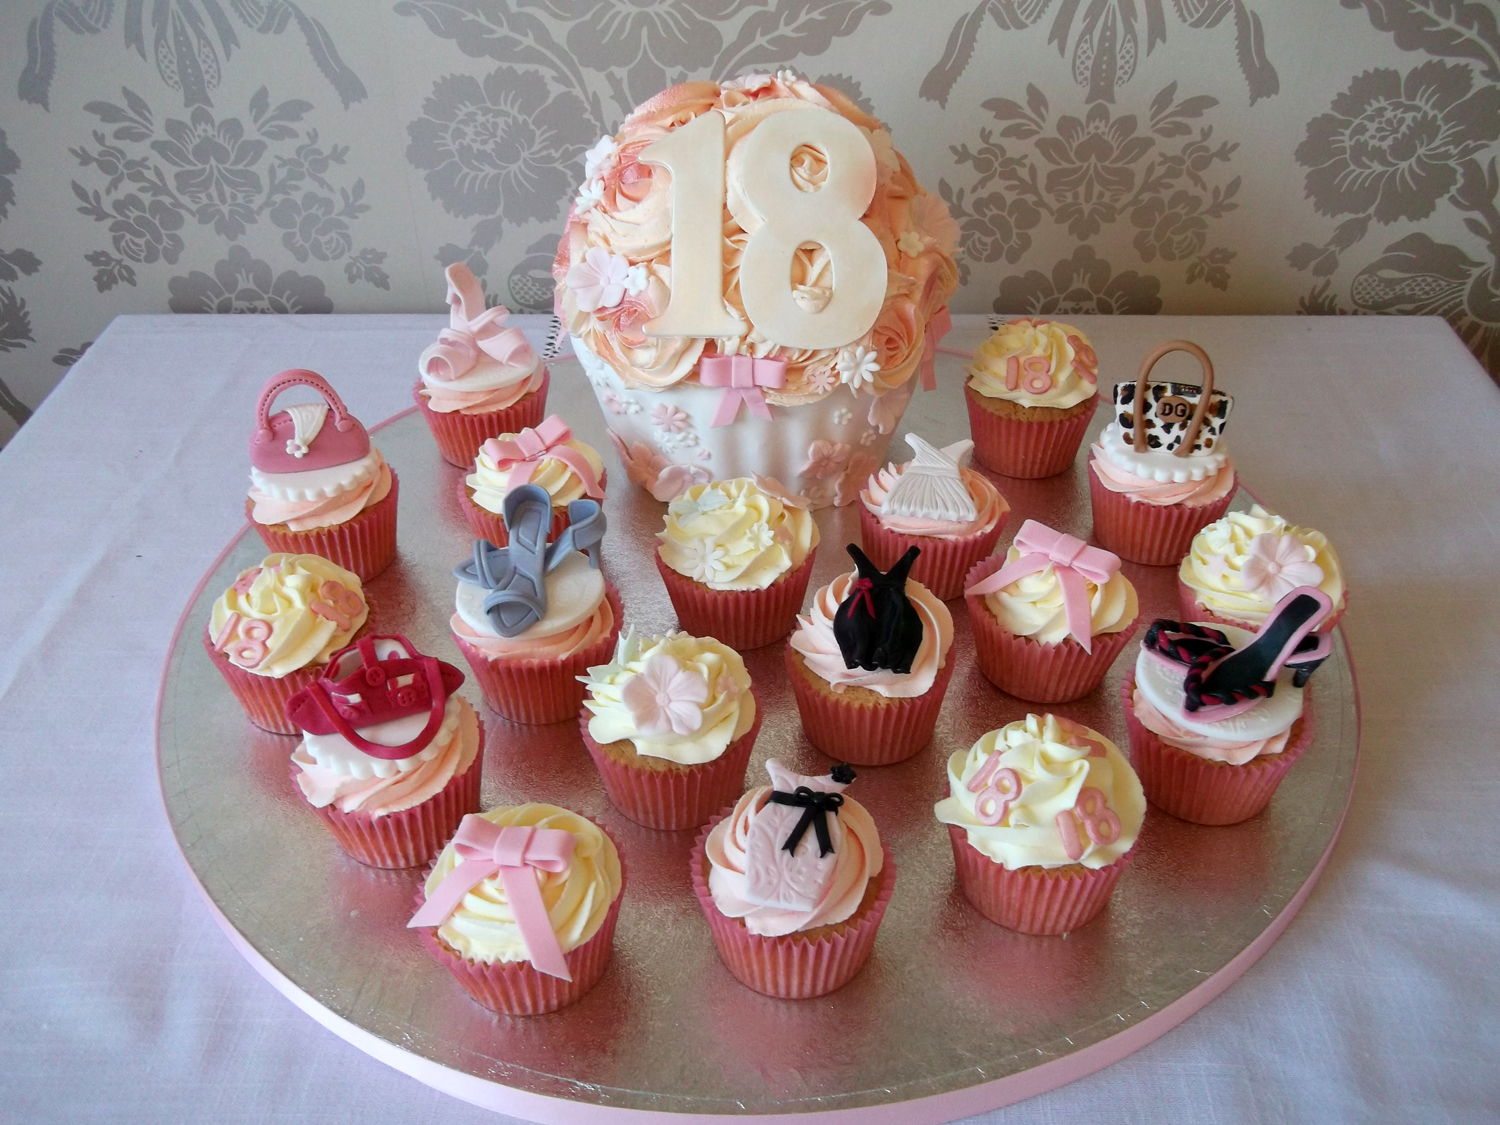 Handbag-&-Shoes-Cupcakes